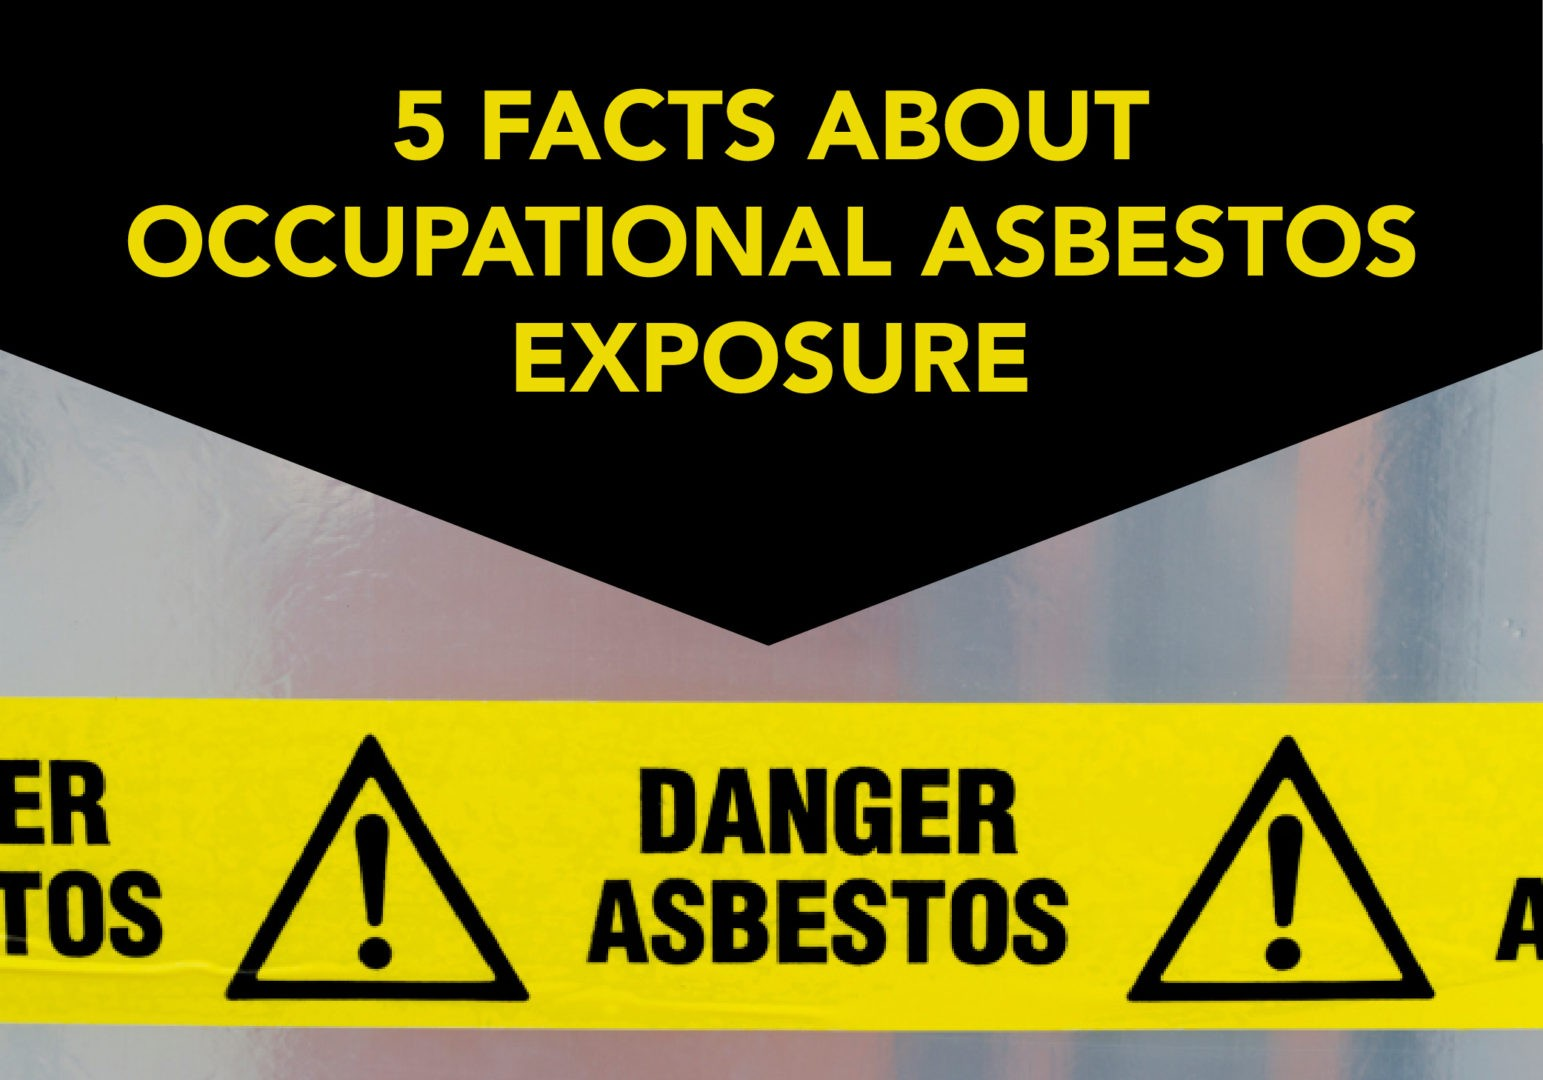 5 Facts About Occupational Asbestos Exposure